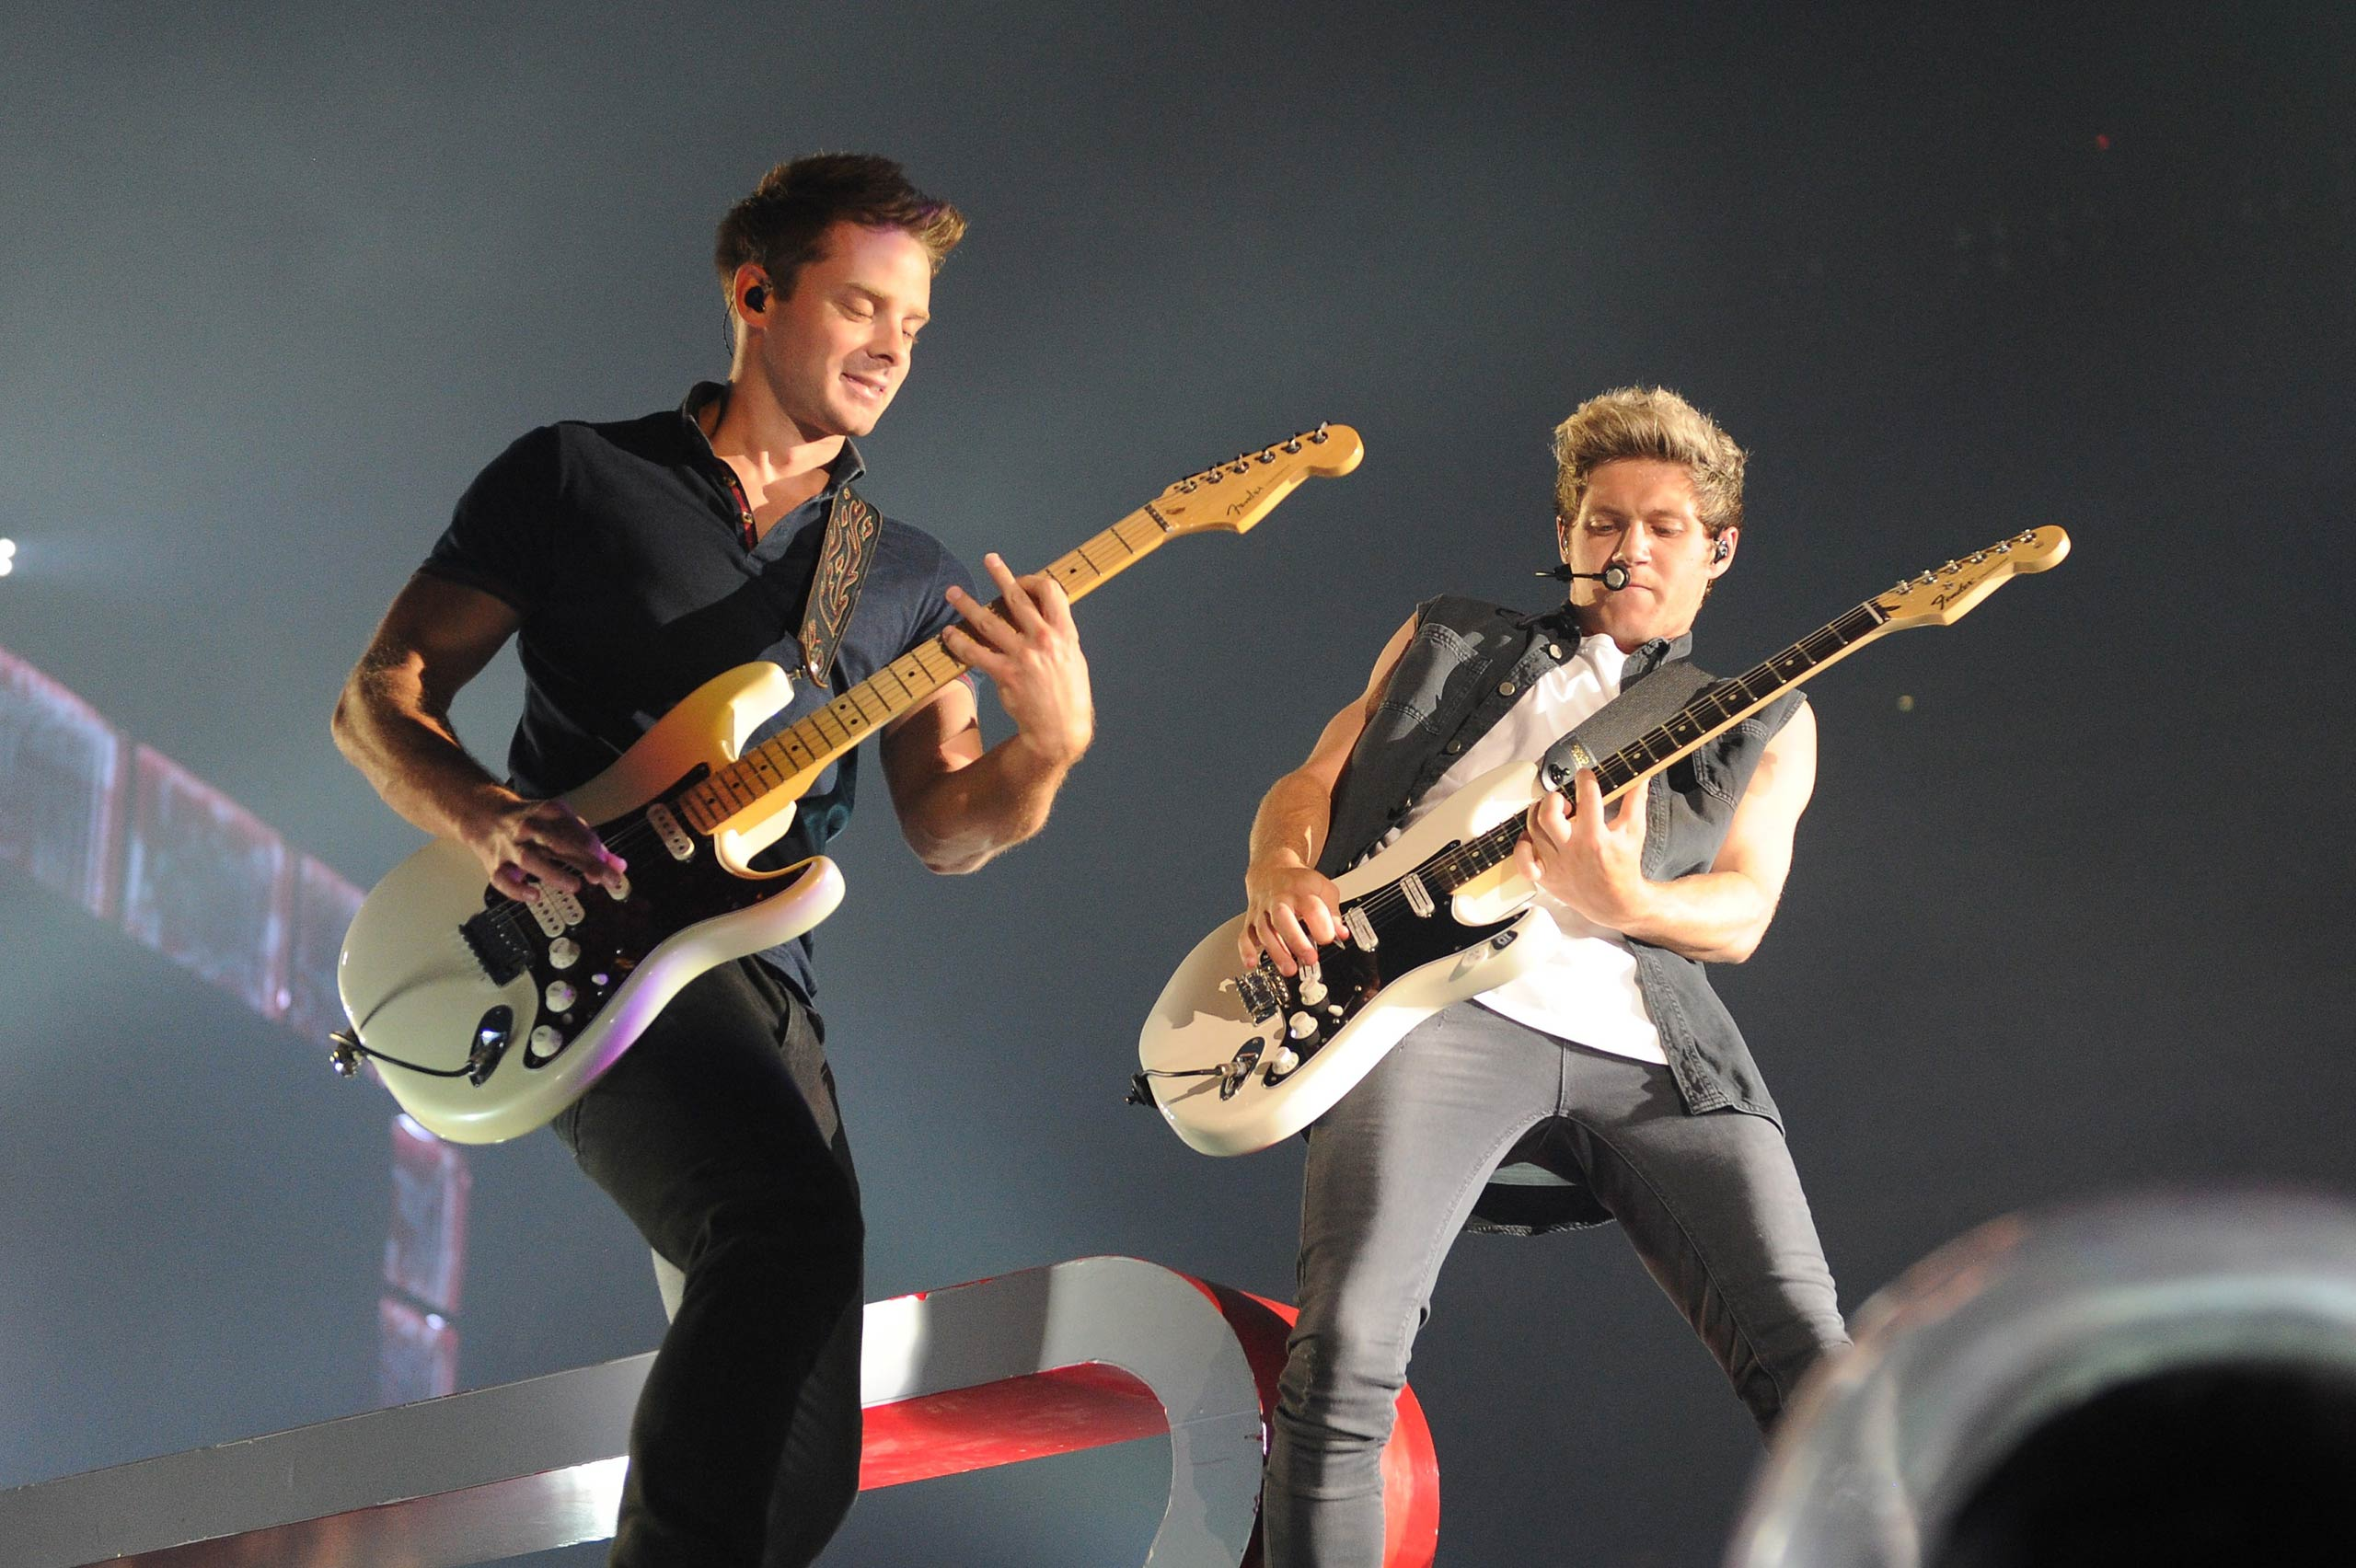 """Guitarist Dan Richards and Niall Horan of One Direction perform onstage during the """"Where We Are"""" tour at Met Life Stadium on Aug. 4, 2014 in New York City."""